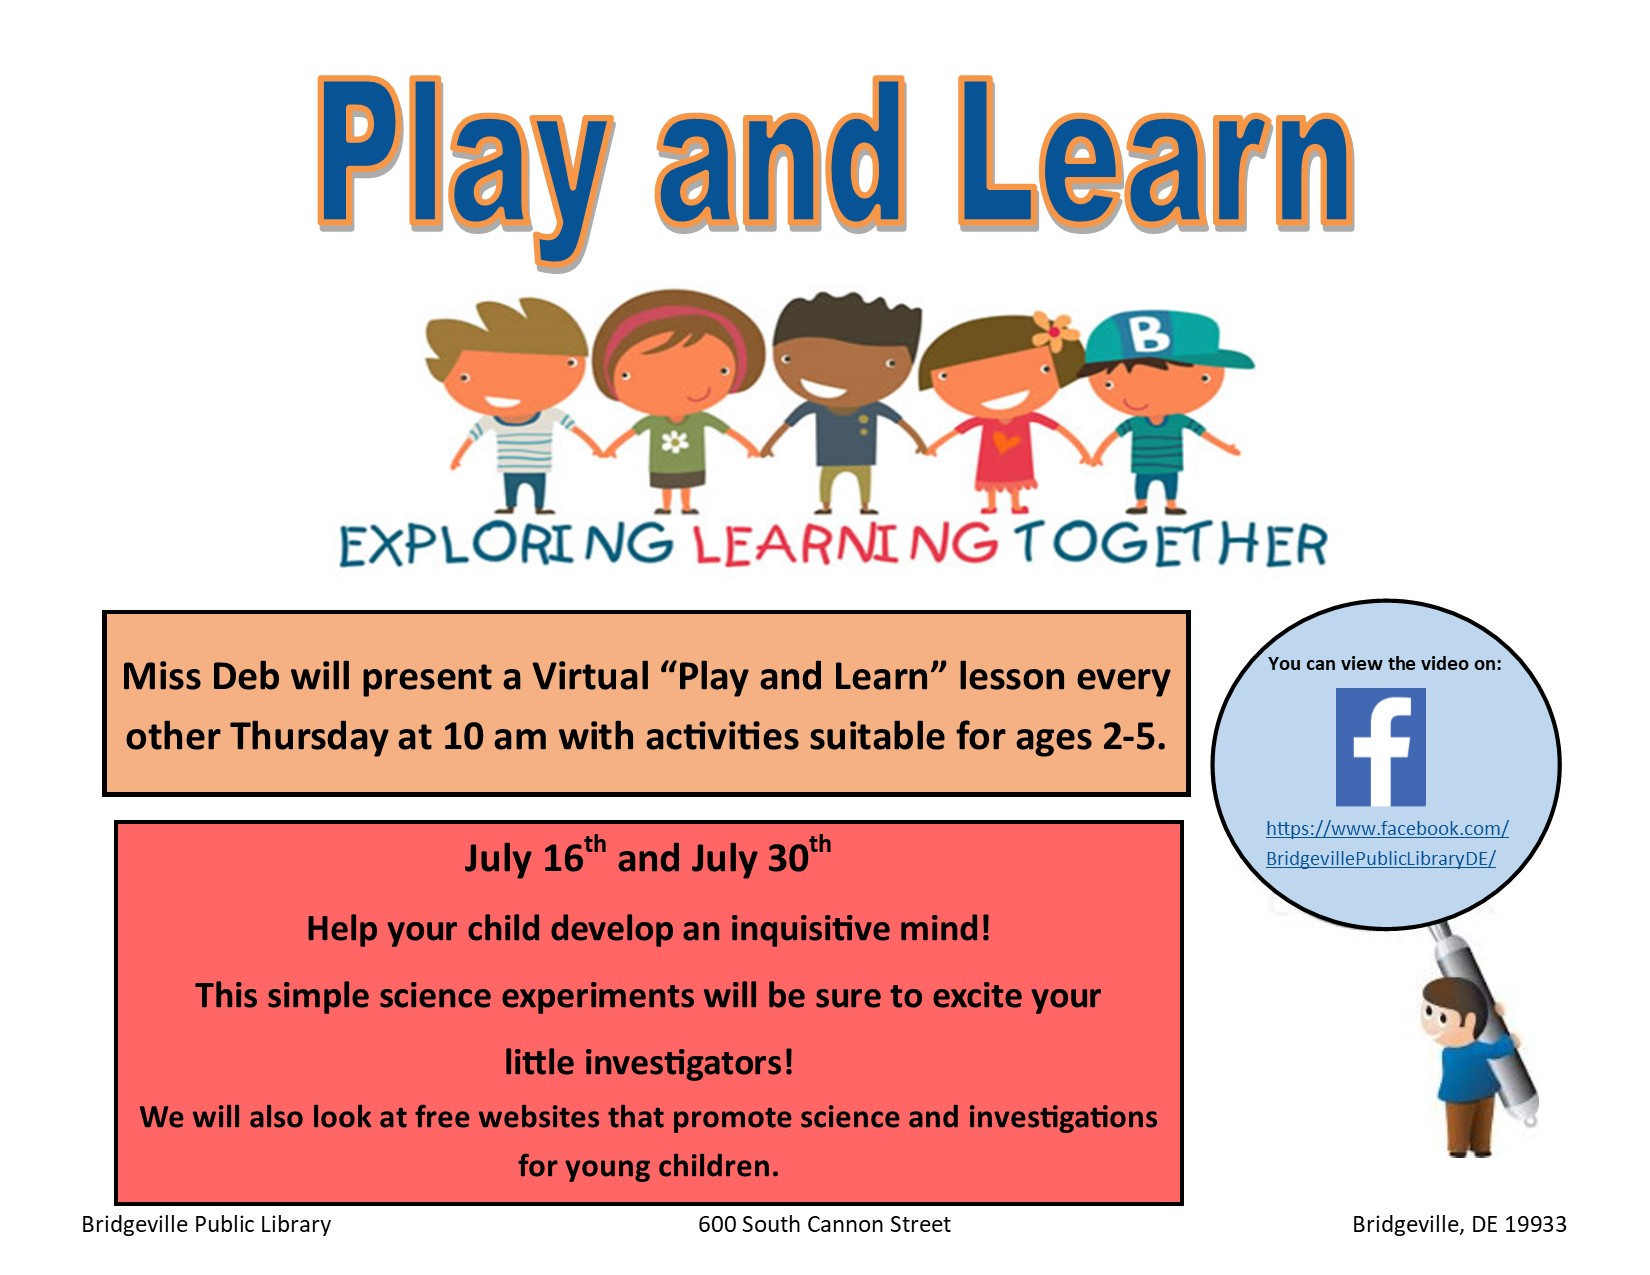 Play and Learn Lesson at the Bridgeville Library